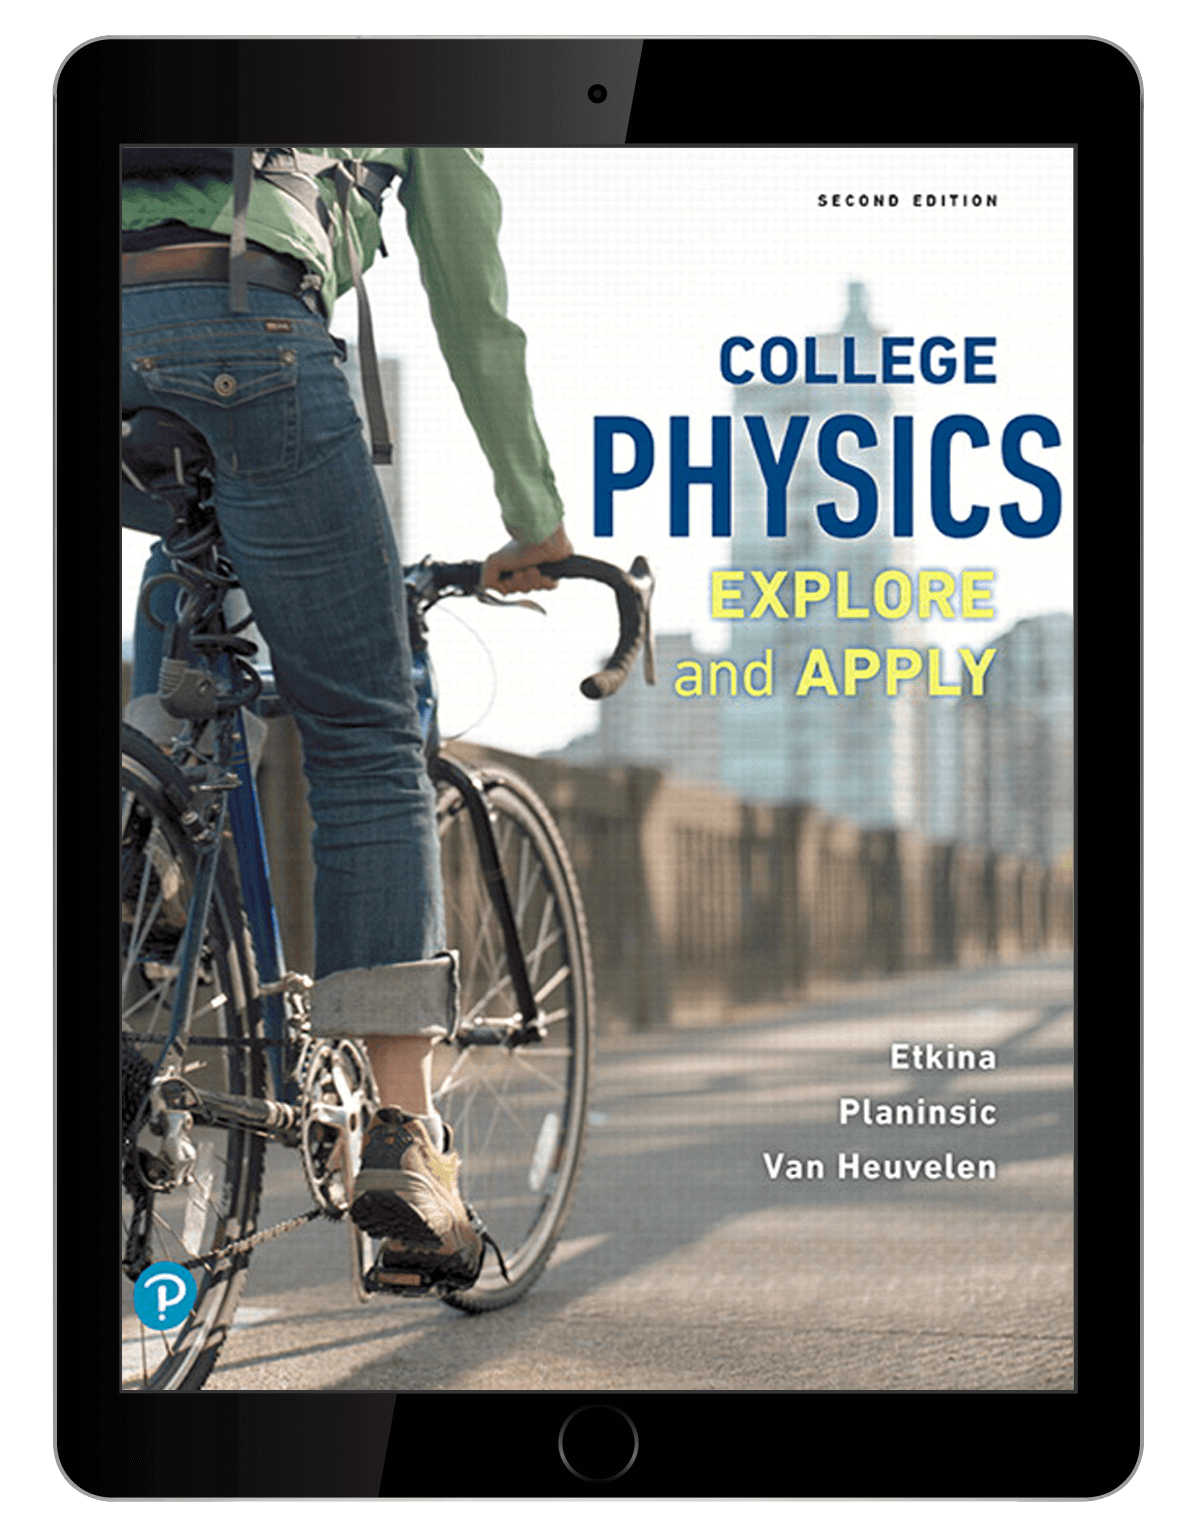 Etkina planinsic van heuvelen college physics explore and apply pearson etext fandeluxe Image collections